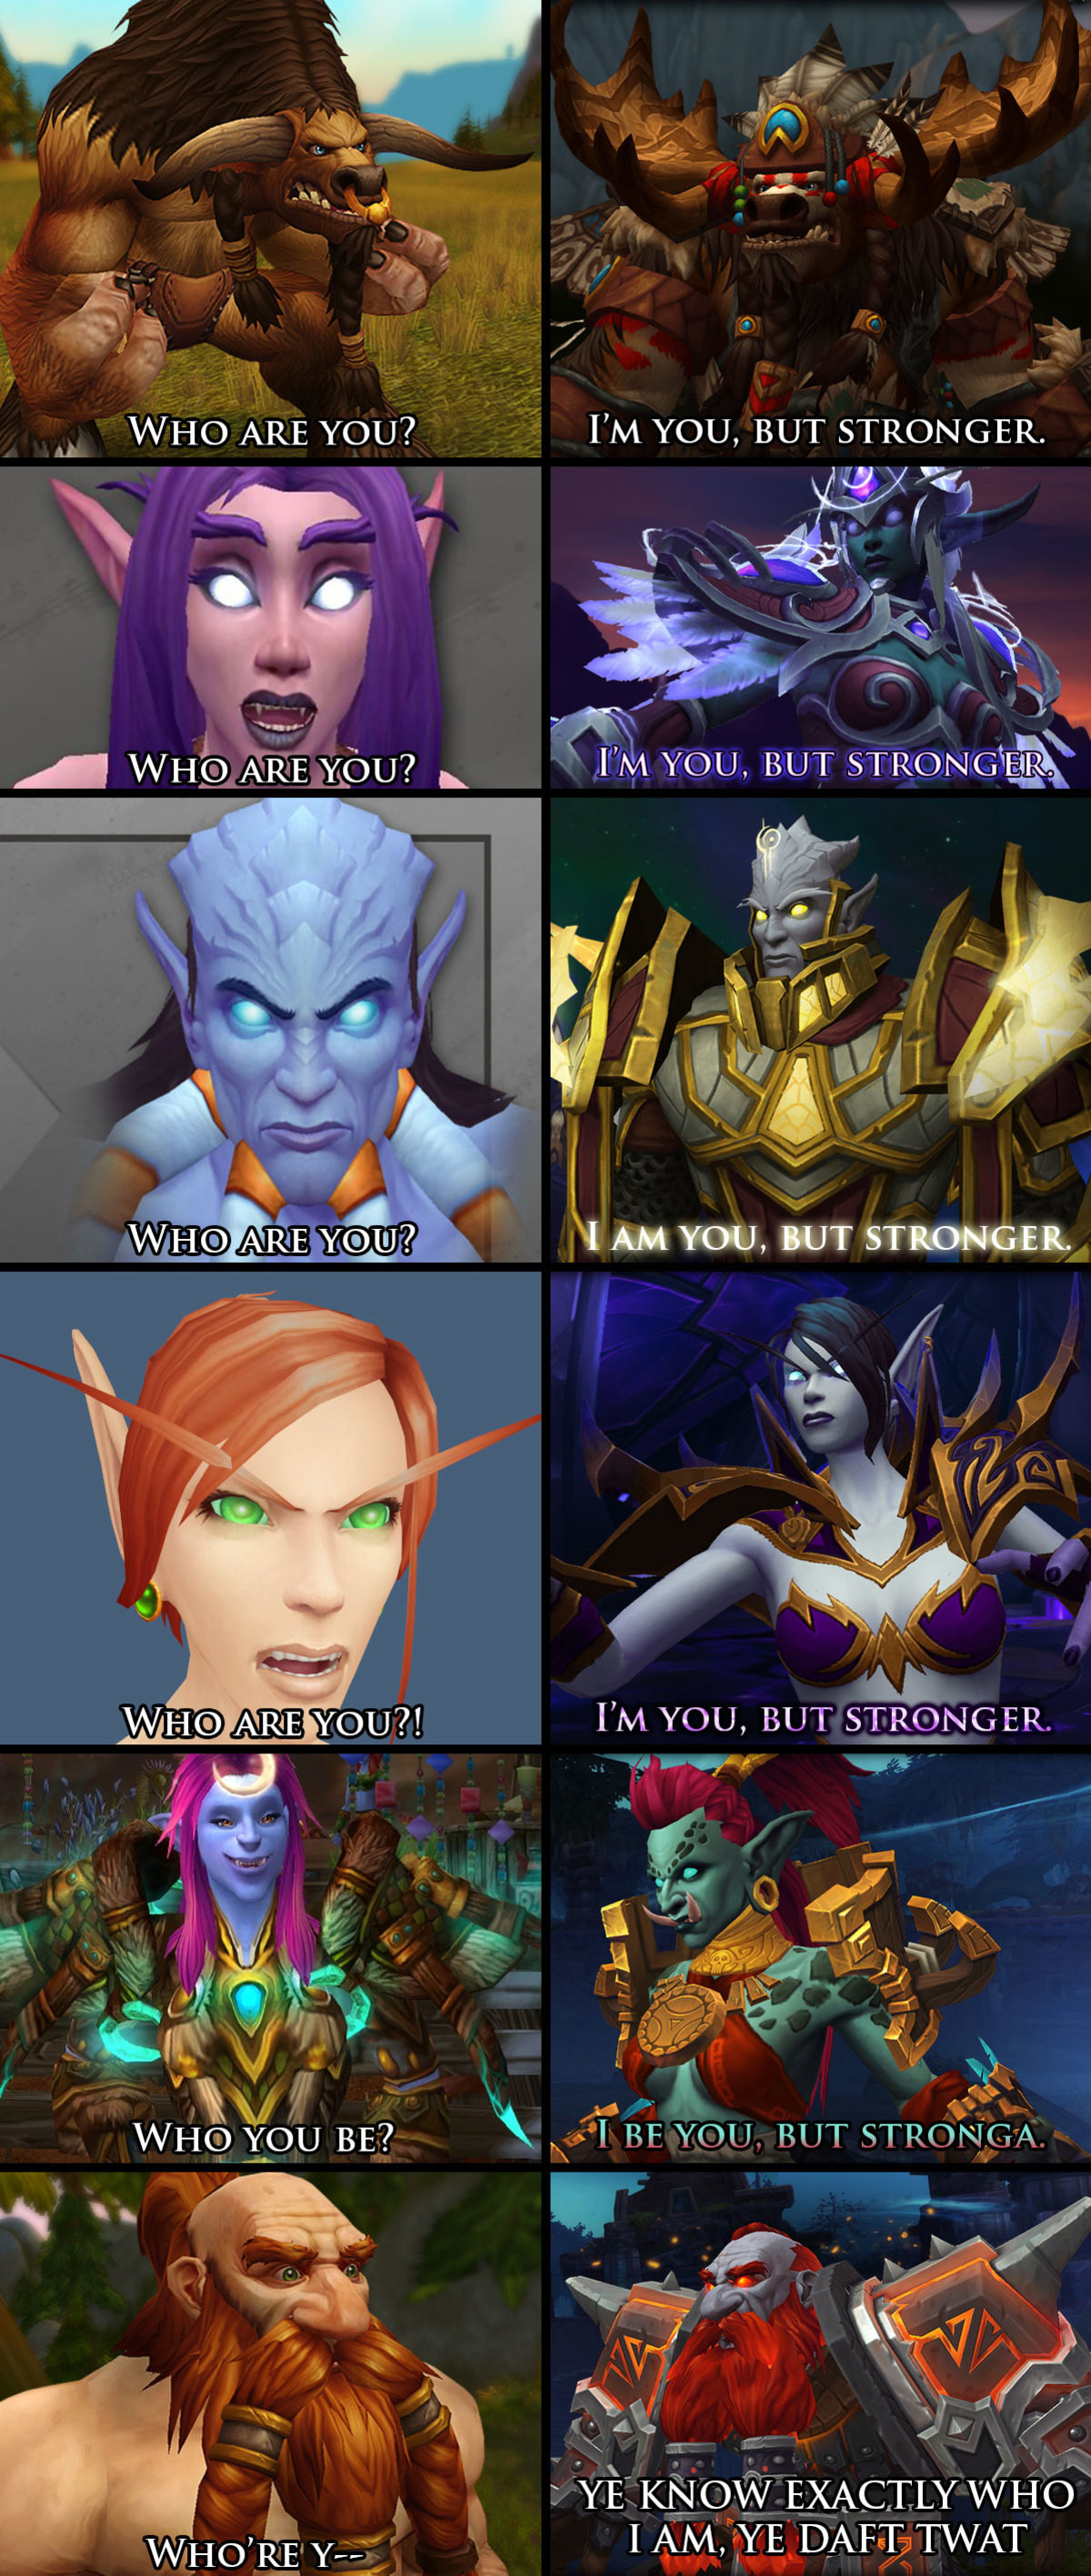 "the new allied races. . WHO ARE YOU? I' M YOU, BUT STRONGER. ARE nou? "" I M YOU, BUT STRONG L Yoo, HIT STORMI, PM YOU, BUT STRONG ER, wut? log BE? RF YOU. NIT I"